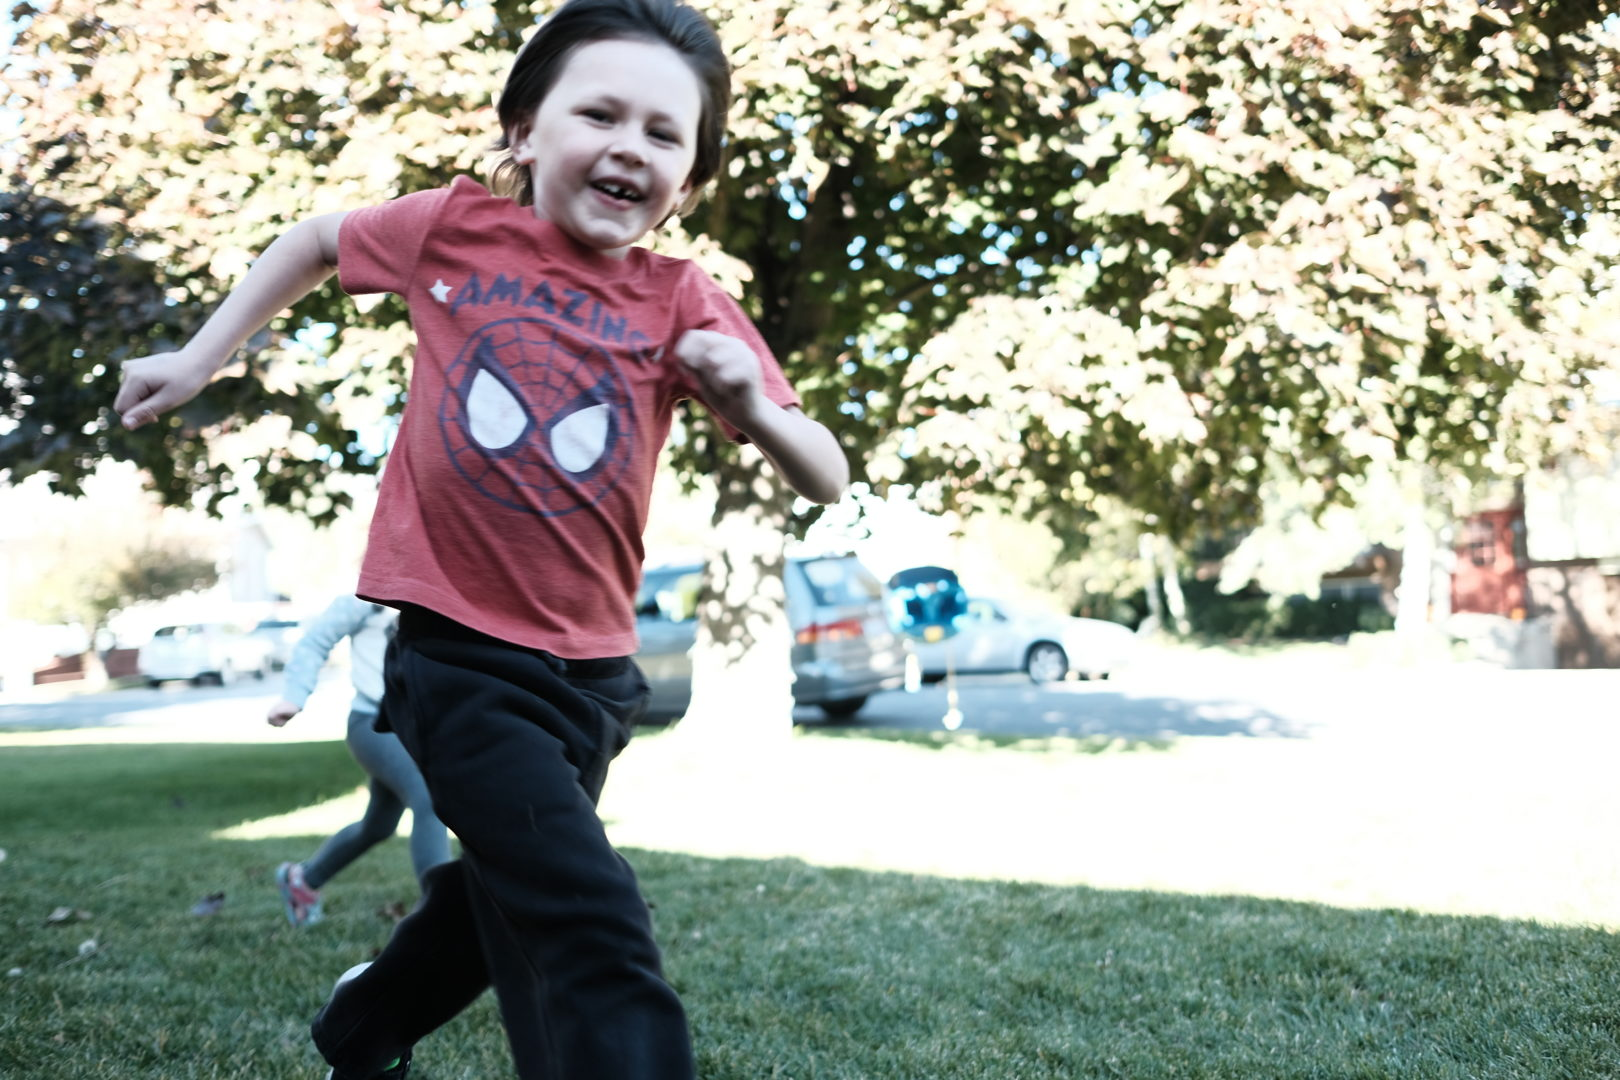 A smiling happy little boy runs past the camera